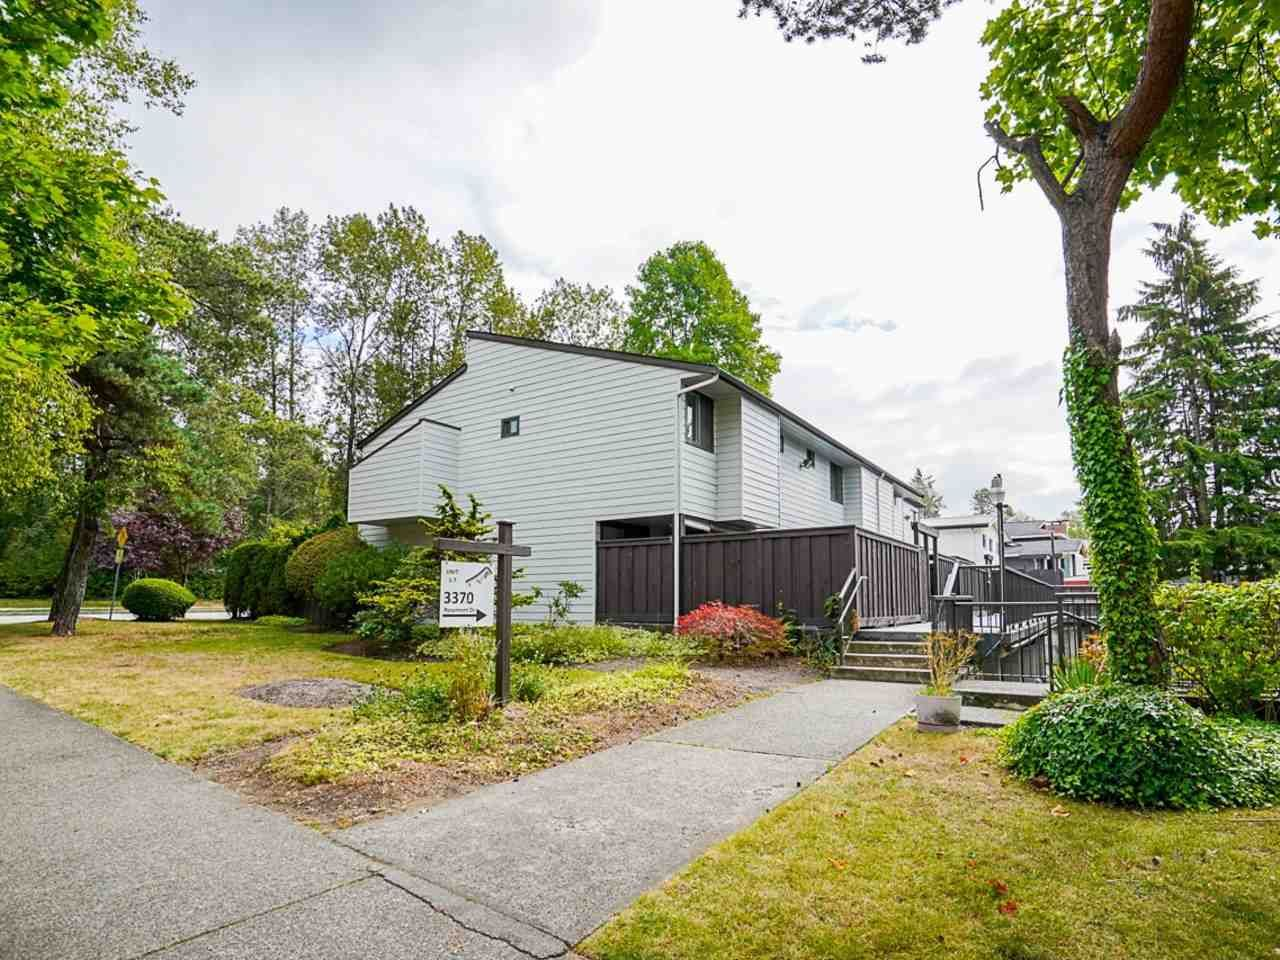 """Main Photo: 3 3370 ROSEMONT Drive in Vancouver: Champlain Heights Townhouse for sale in """"ASPENWOOD"""" (Vancouver East)  : MLS®# R2493440"""